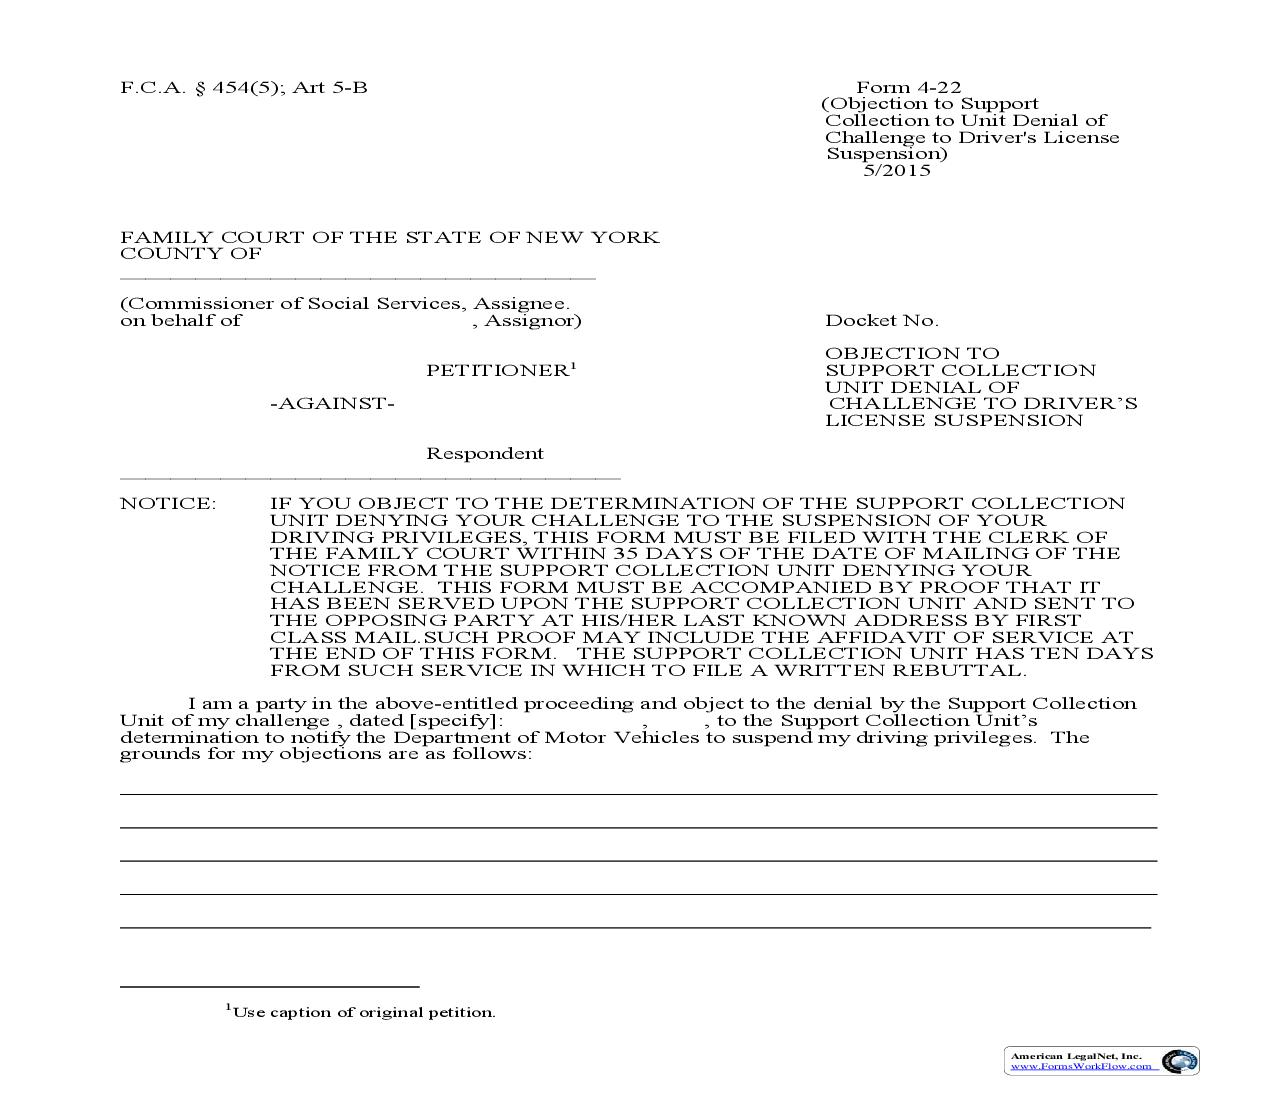 Objection To Support Collection Unit Denial Of Challenge To Drivers License Suspension {4-22} | Pdf Fpdf Doc Docx | New York